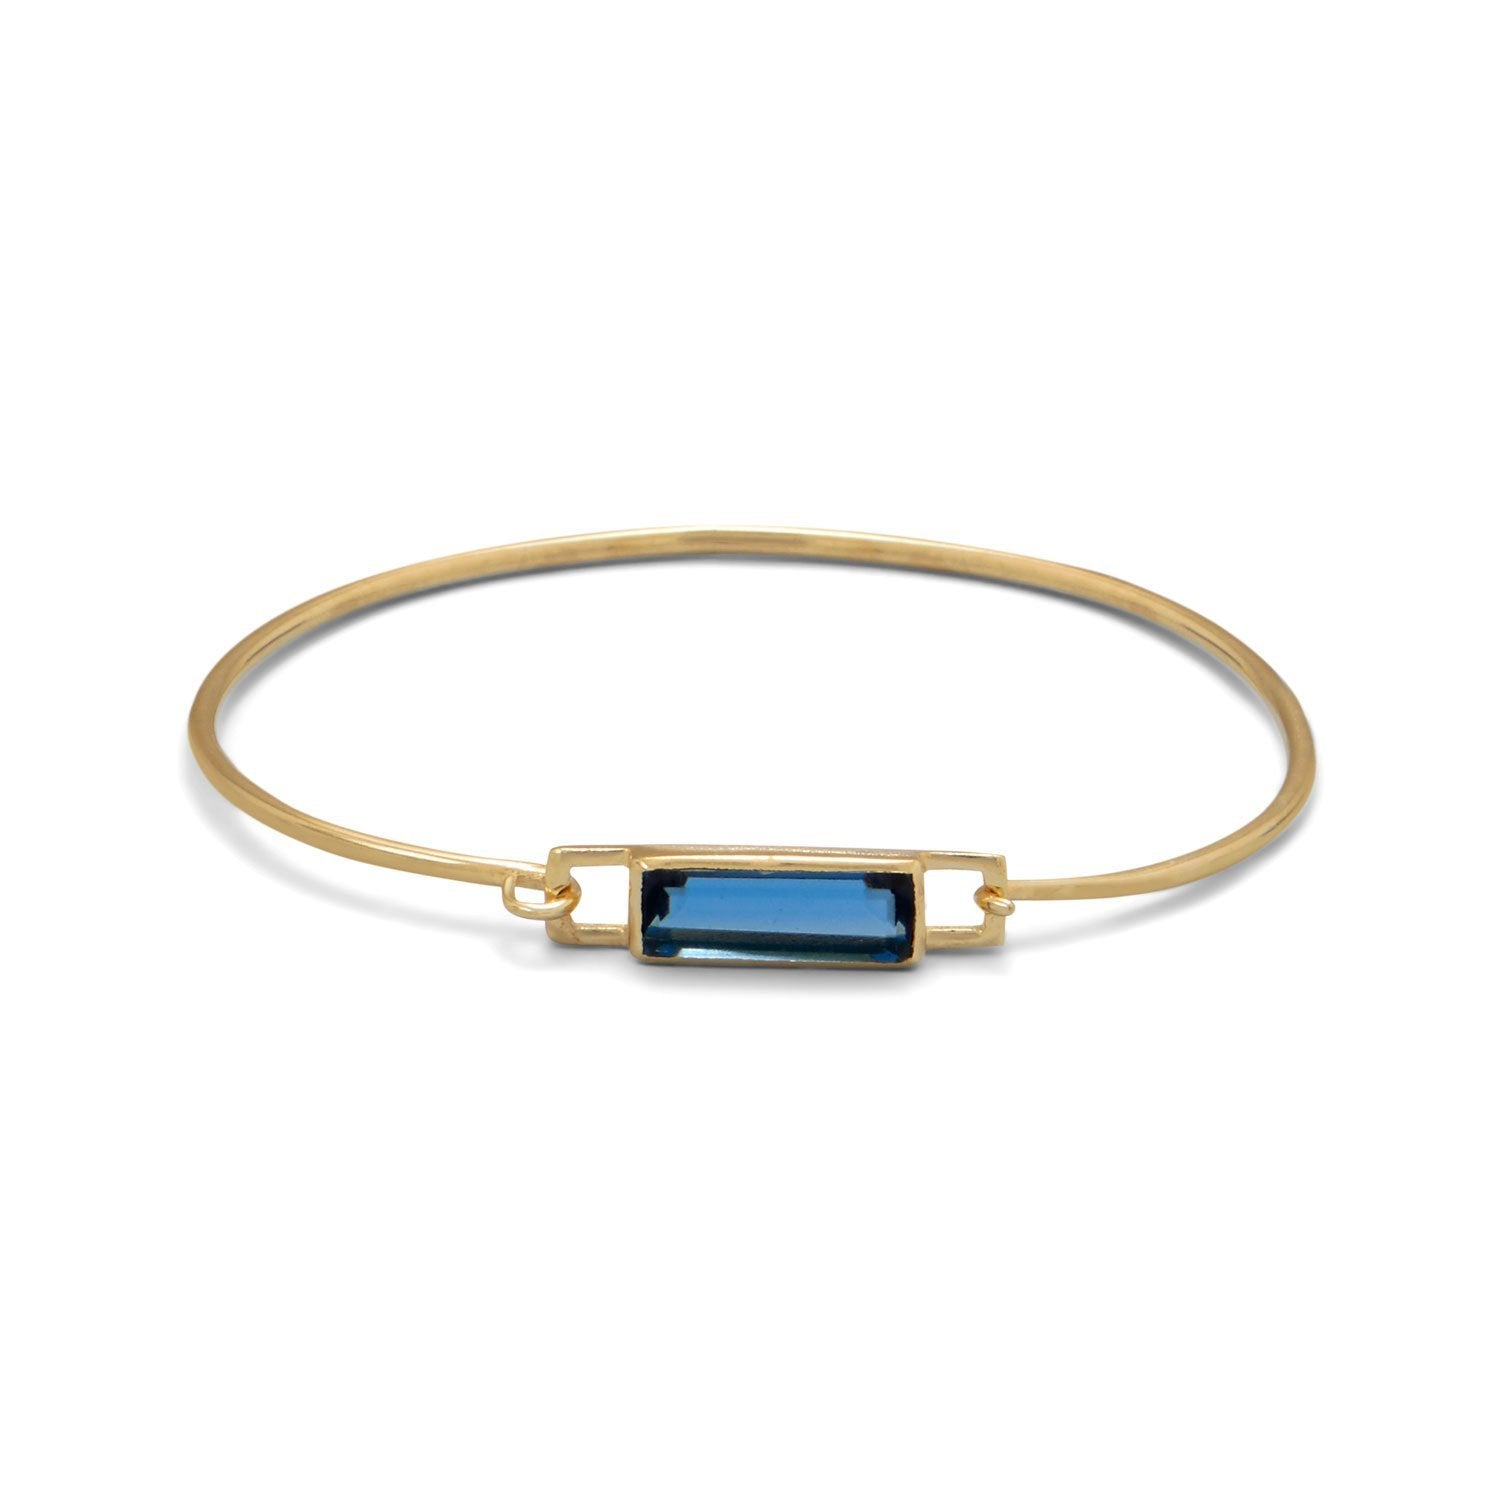 18K Gold Blue Quartz Emerald Cut Bangle